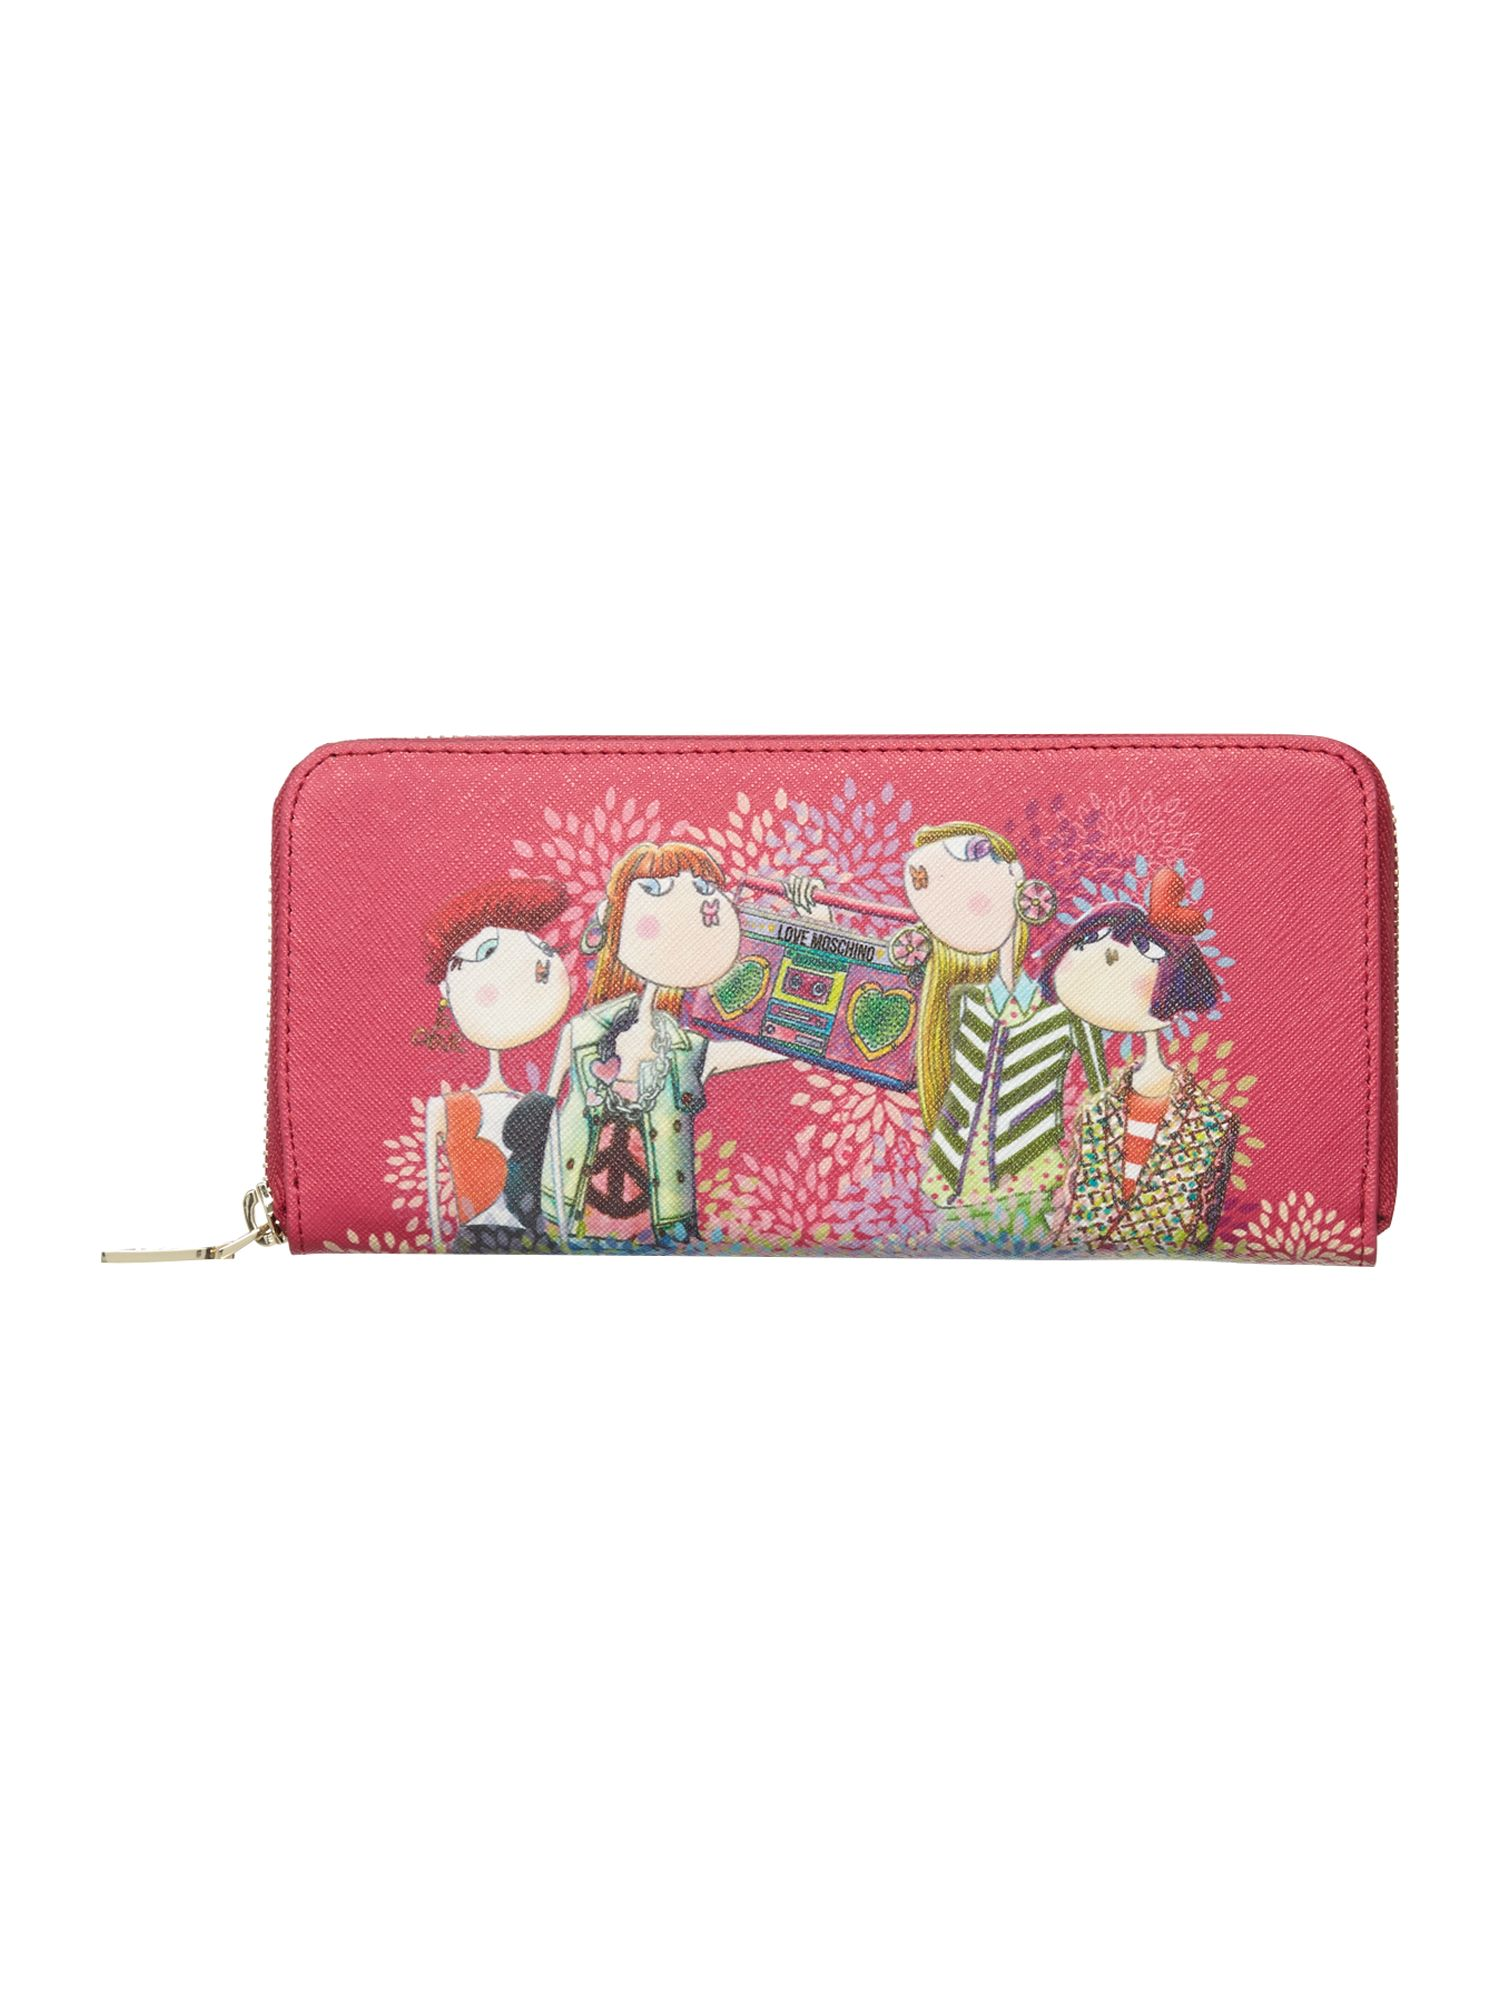 Pink ziparound charming purse